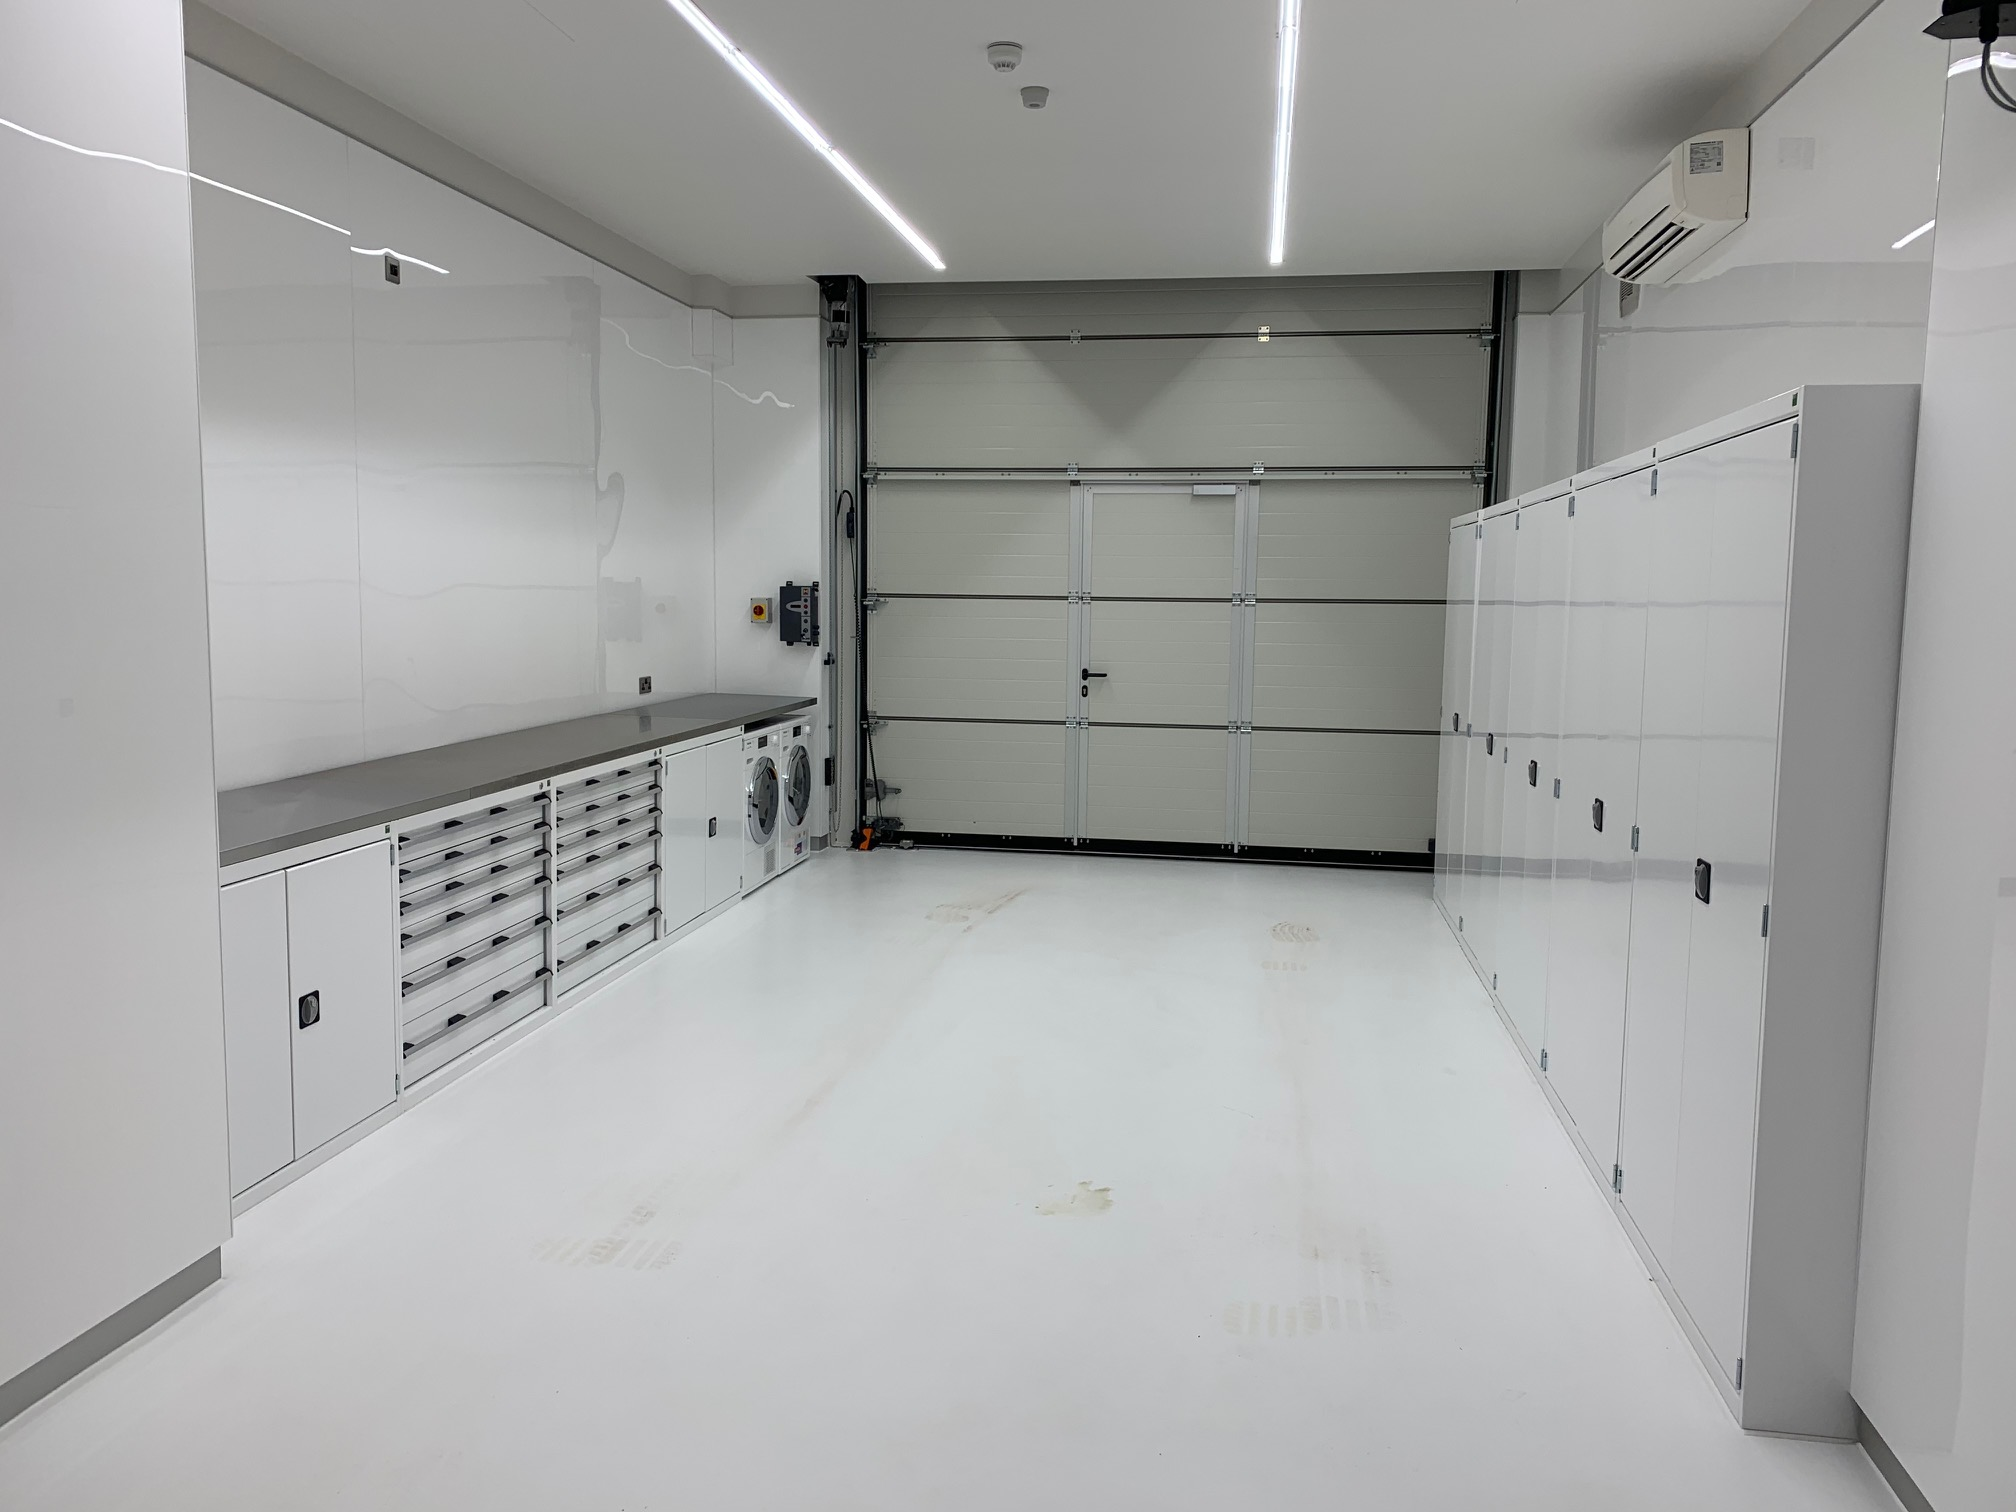 Bott Cubio cabinets supplied in custom white with custom stainless steel worktops for a prestigious garage/showroom in west London. Low cupboards and drawer units on the left, tall cupboards on the right offering huge storage capacity.